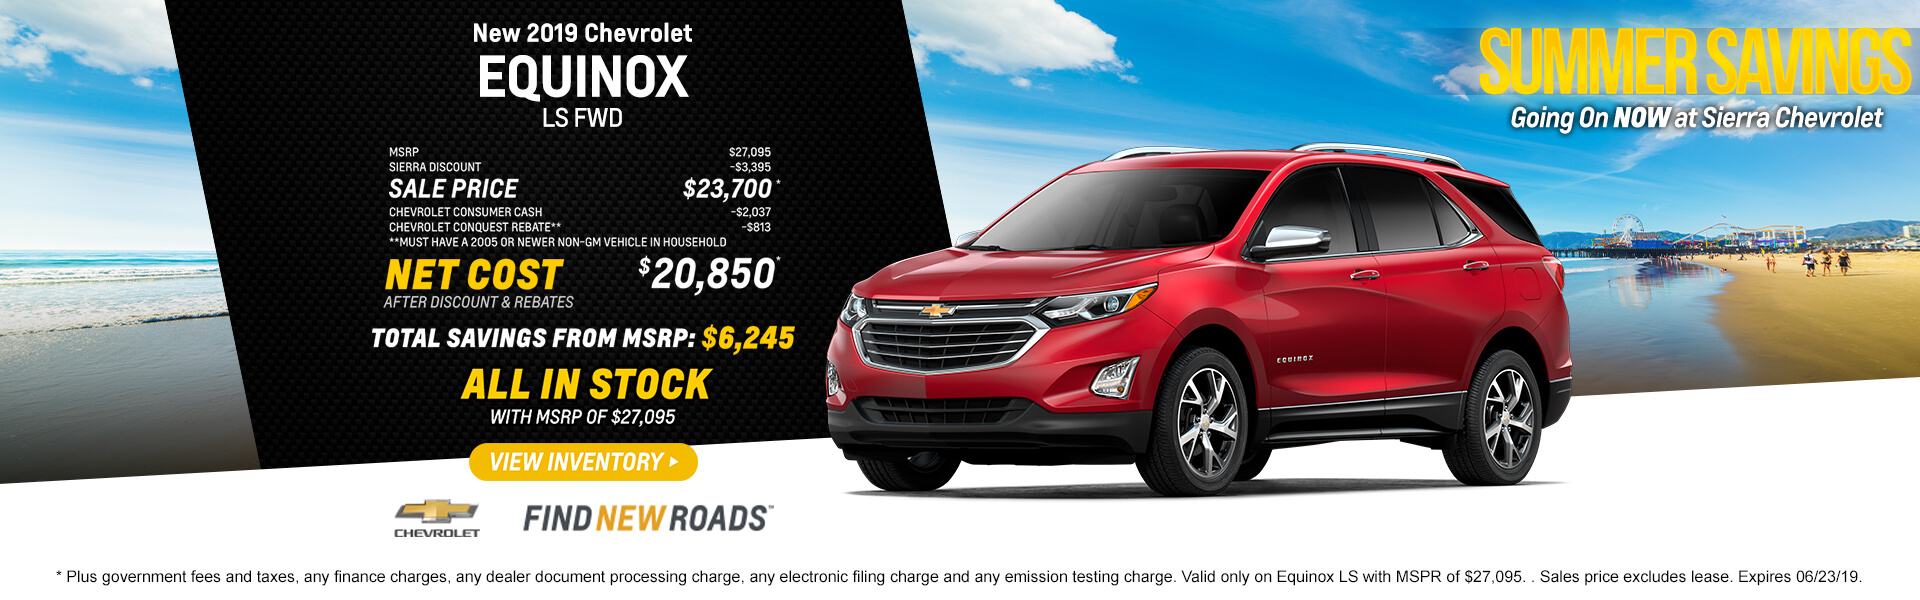 2019 Chevrolet Equinox LS FWD  MSRP $27,095 Sierra Discount -$3,395 SALE PRICE $23,700* Chevrolet Consumer Cash -$2037 Chevrolet Conquest Rebate** -$813 **Must have a 2005 or newer non-GM vehicle in household  Net Cost After Discount & Rebates $20,850*  Total Savings from MSRP $6,245  ALL IN STOCK with MSPR of $27,095  *Plus government fees and taxes, any finance charges, any dealer document processing charge, any electronic filing charge and any emission testing charge. Valid only on Equinox LS with MSPR of $27,095. Sales price excludes lease. Expires 06/23/19.